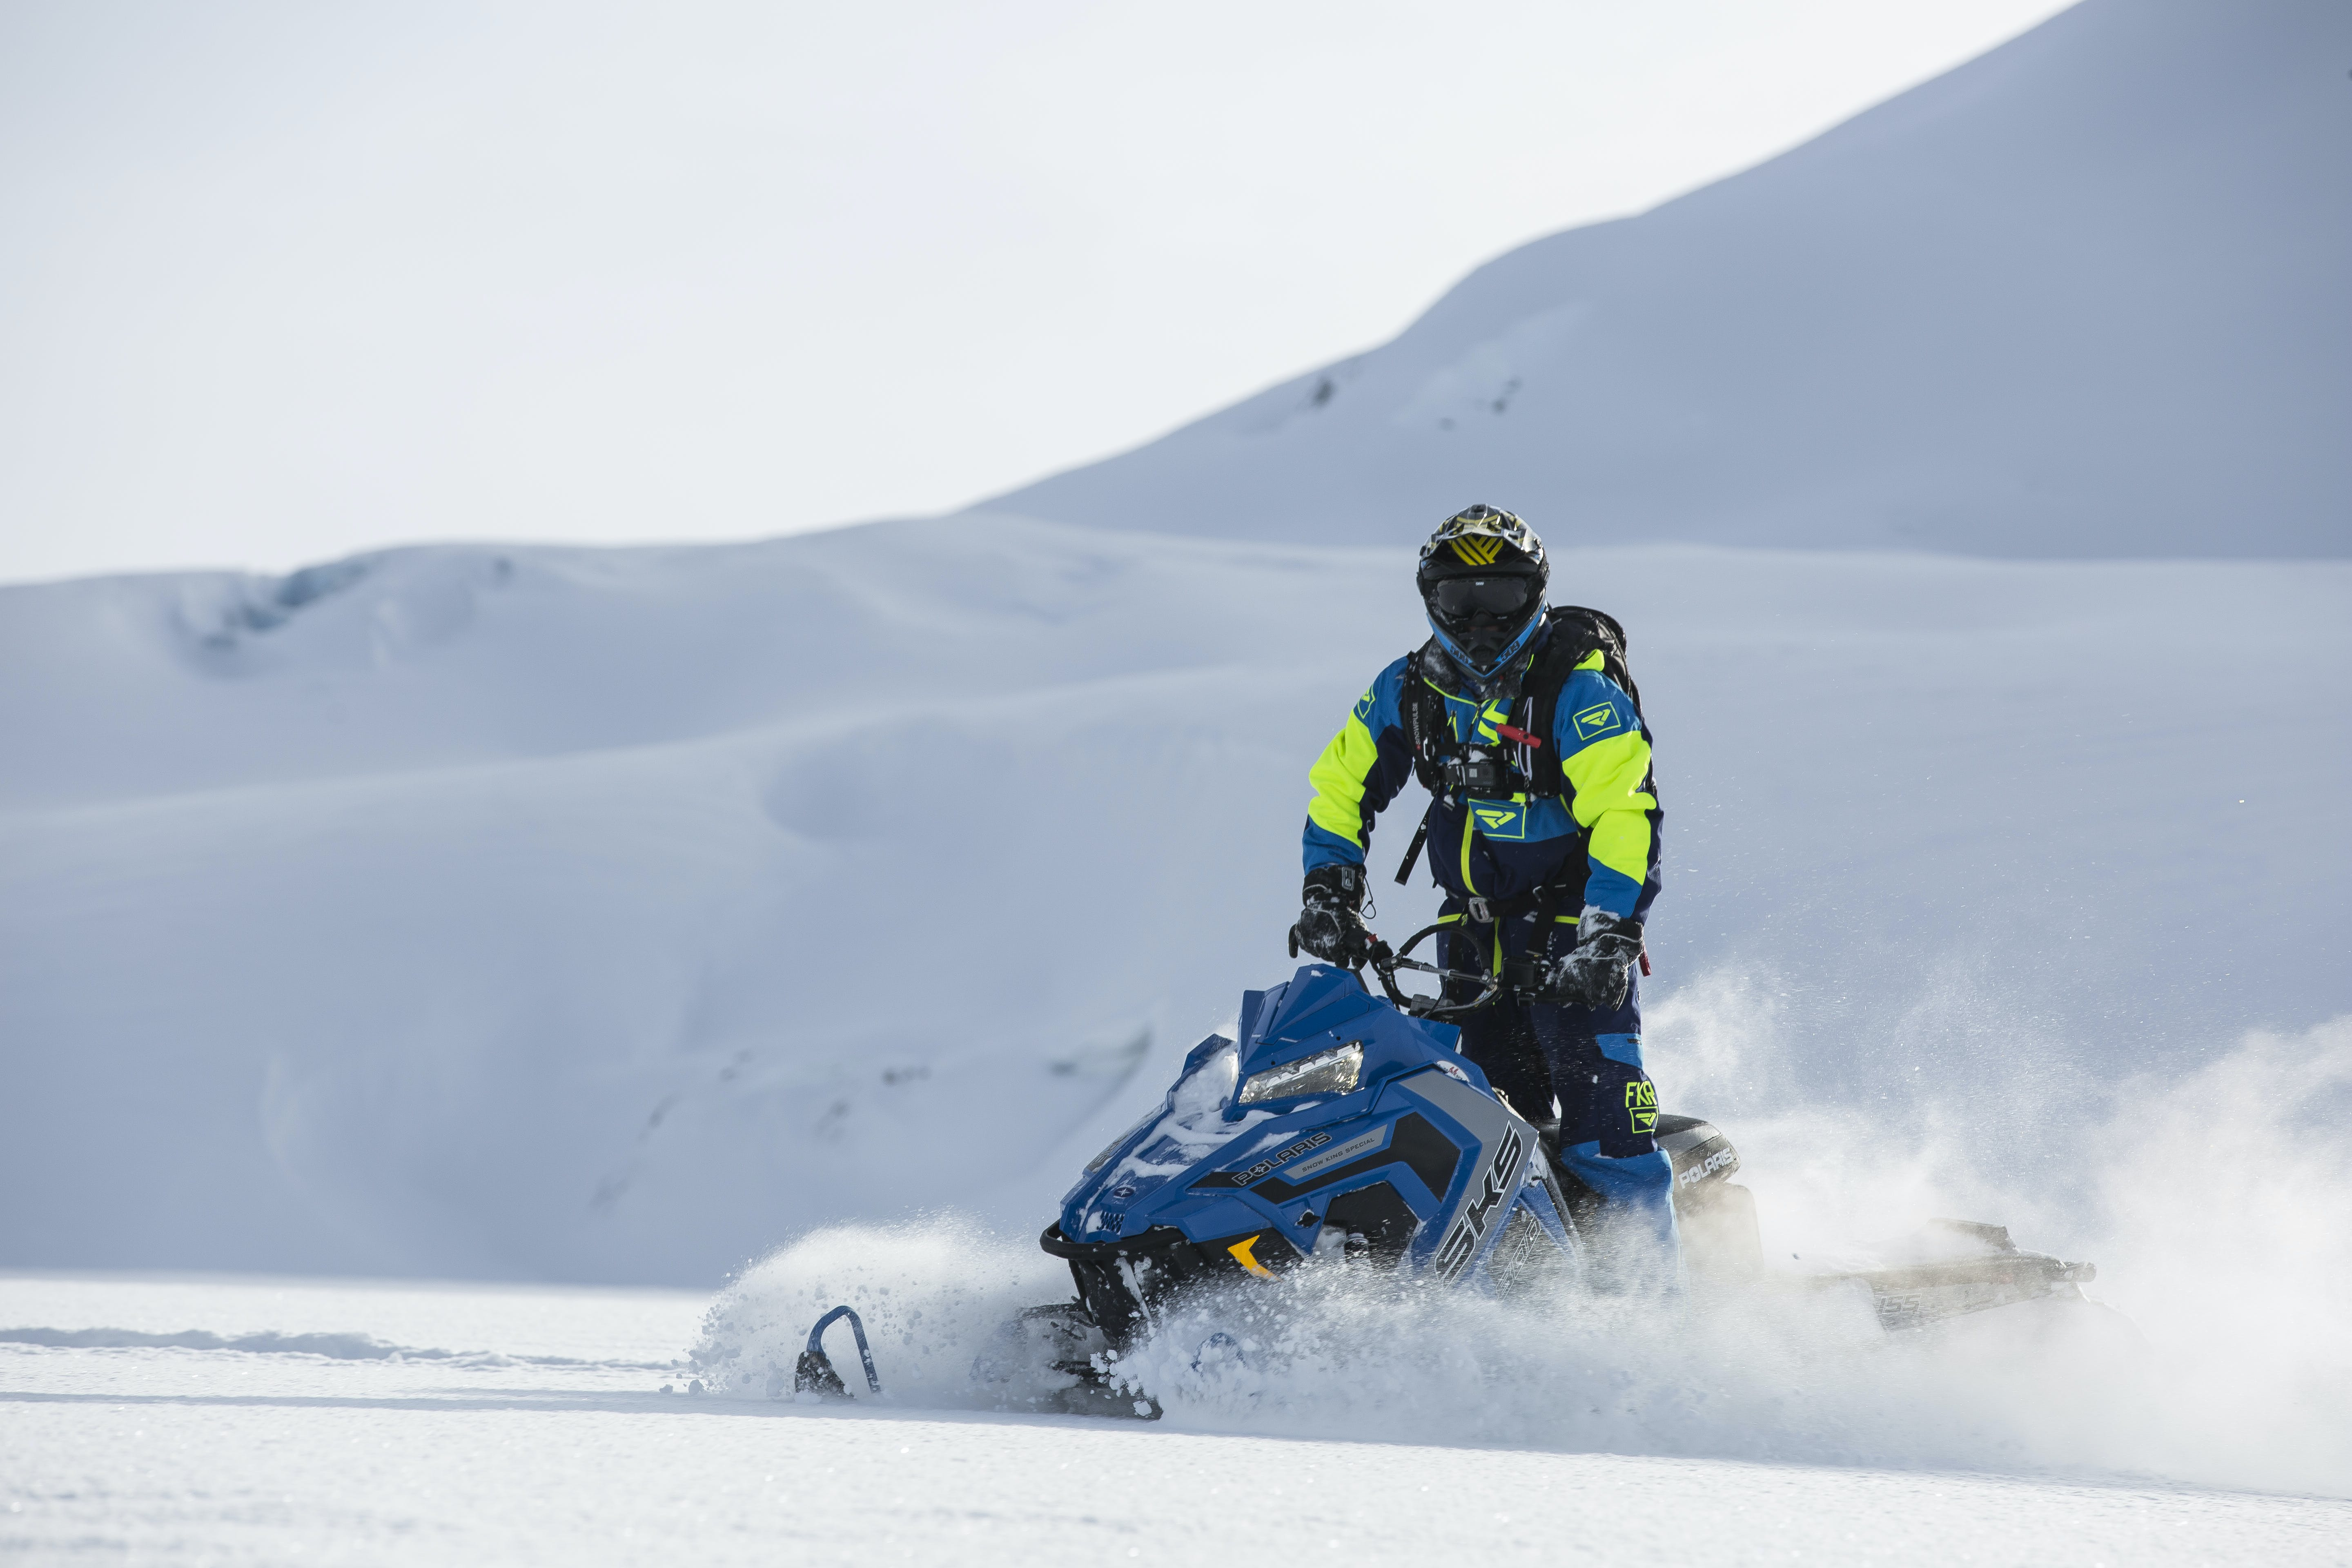 Person Rides on Blue Snowmobile at Daytime